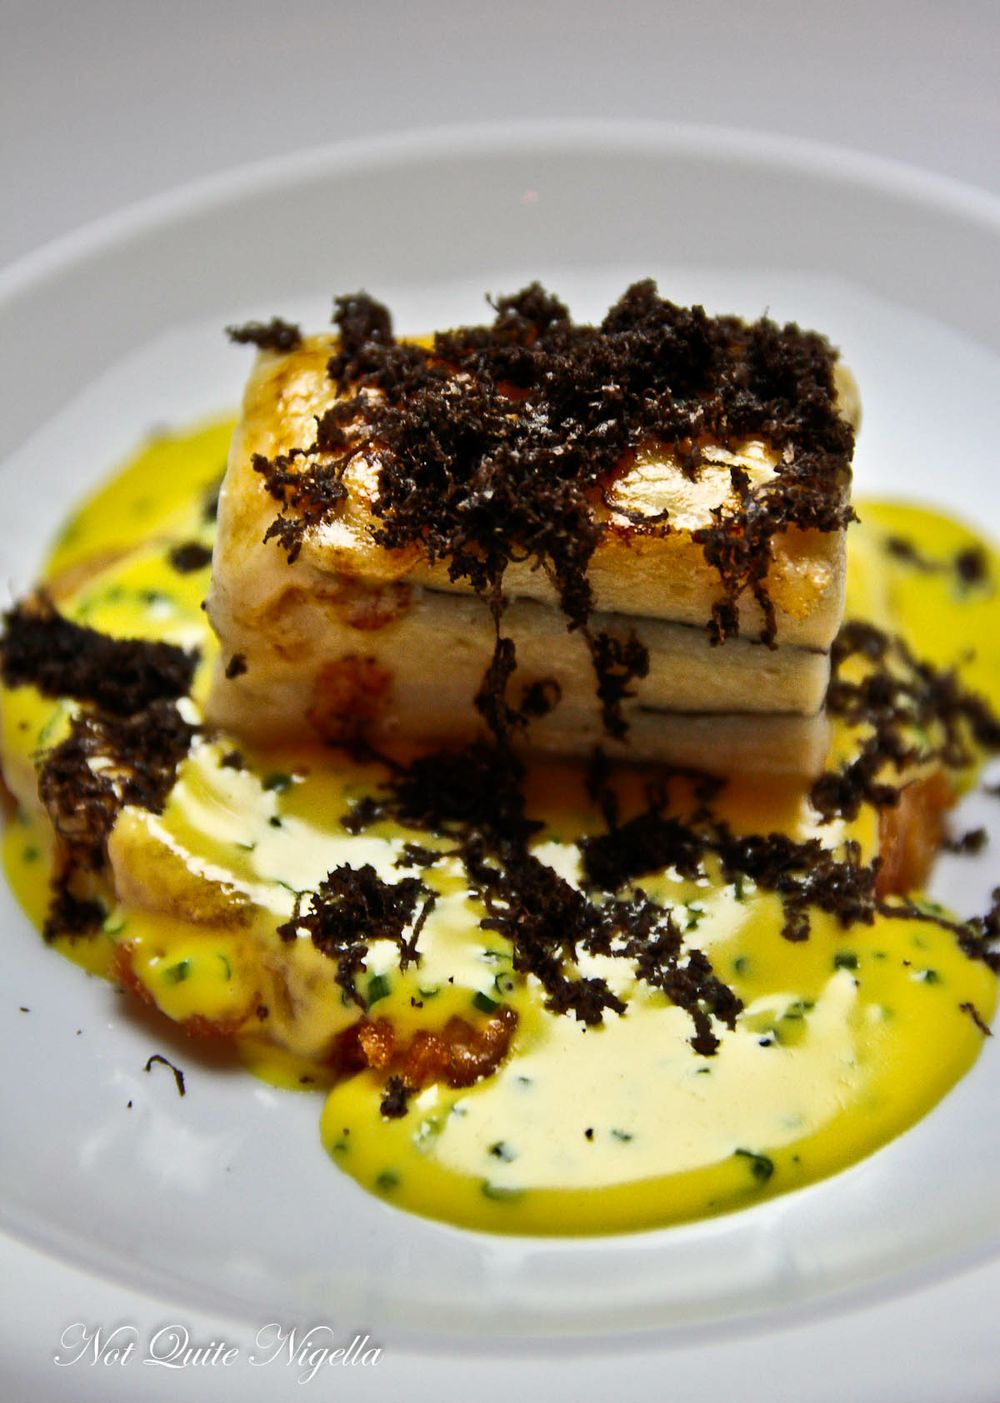 rockpool-on-george-truffle-7-2